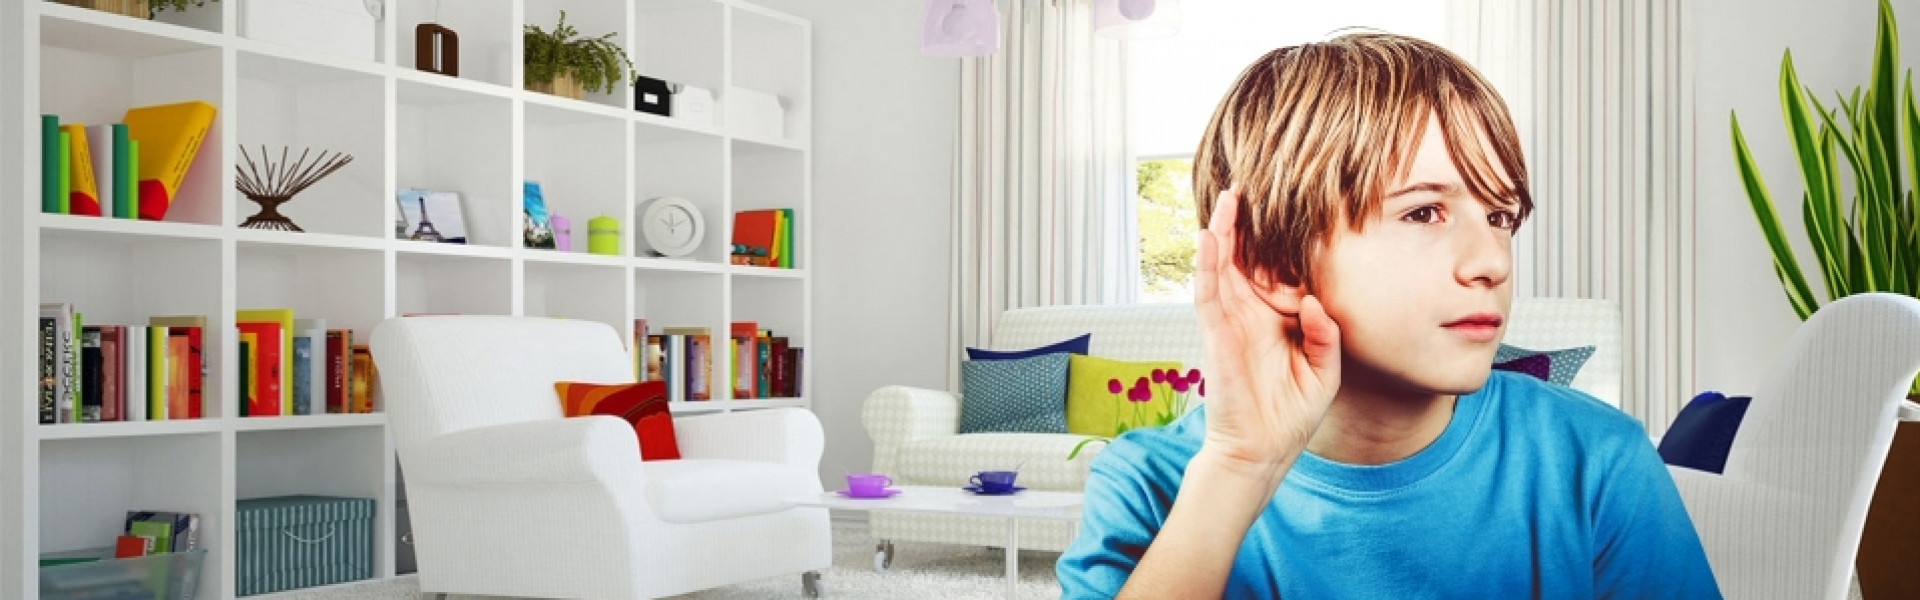 Hearing loss affects children too!